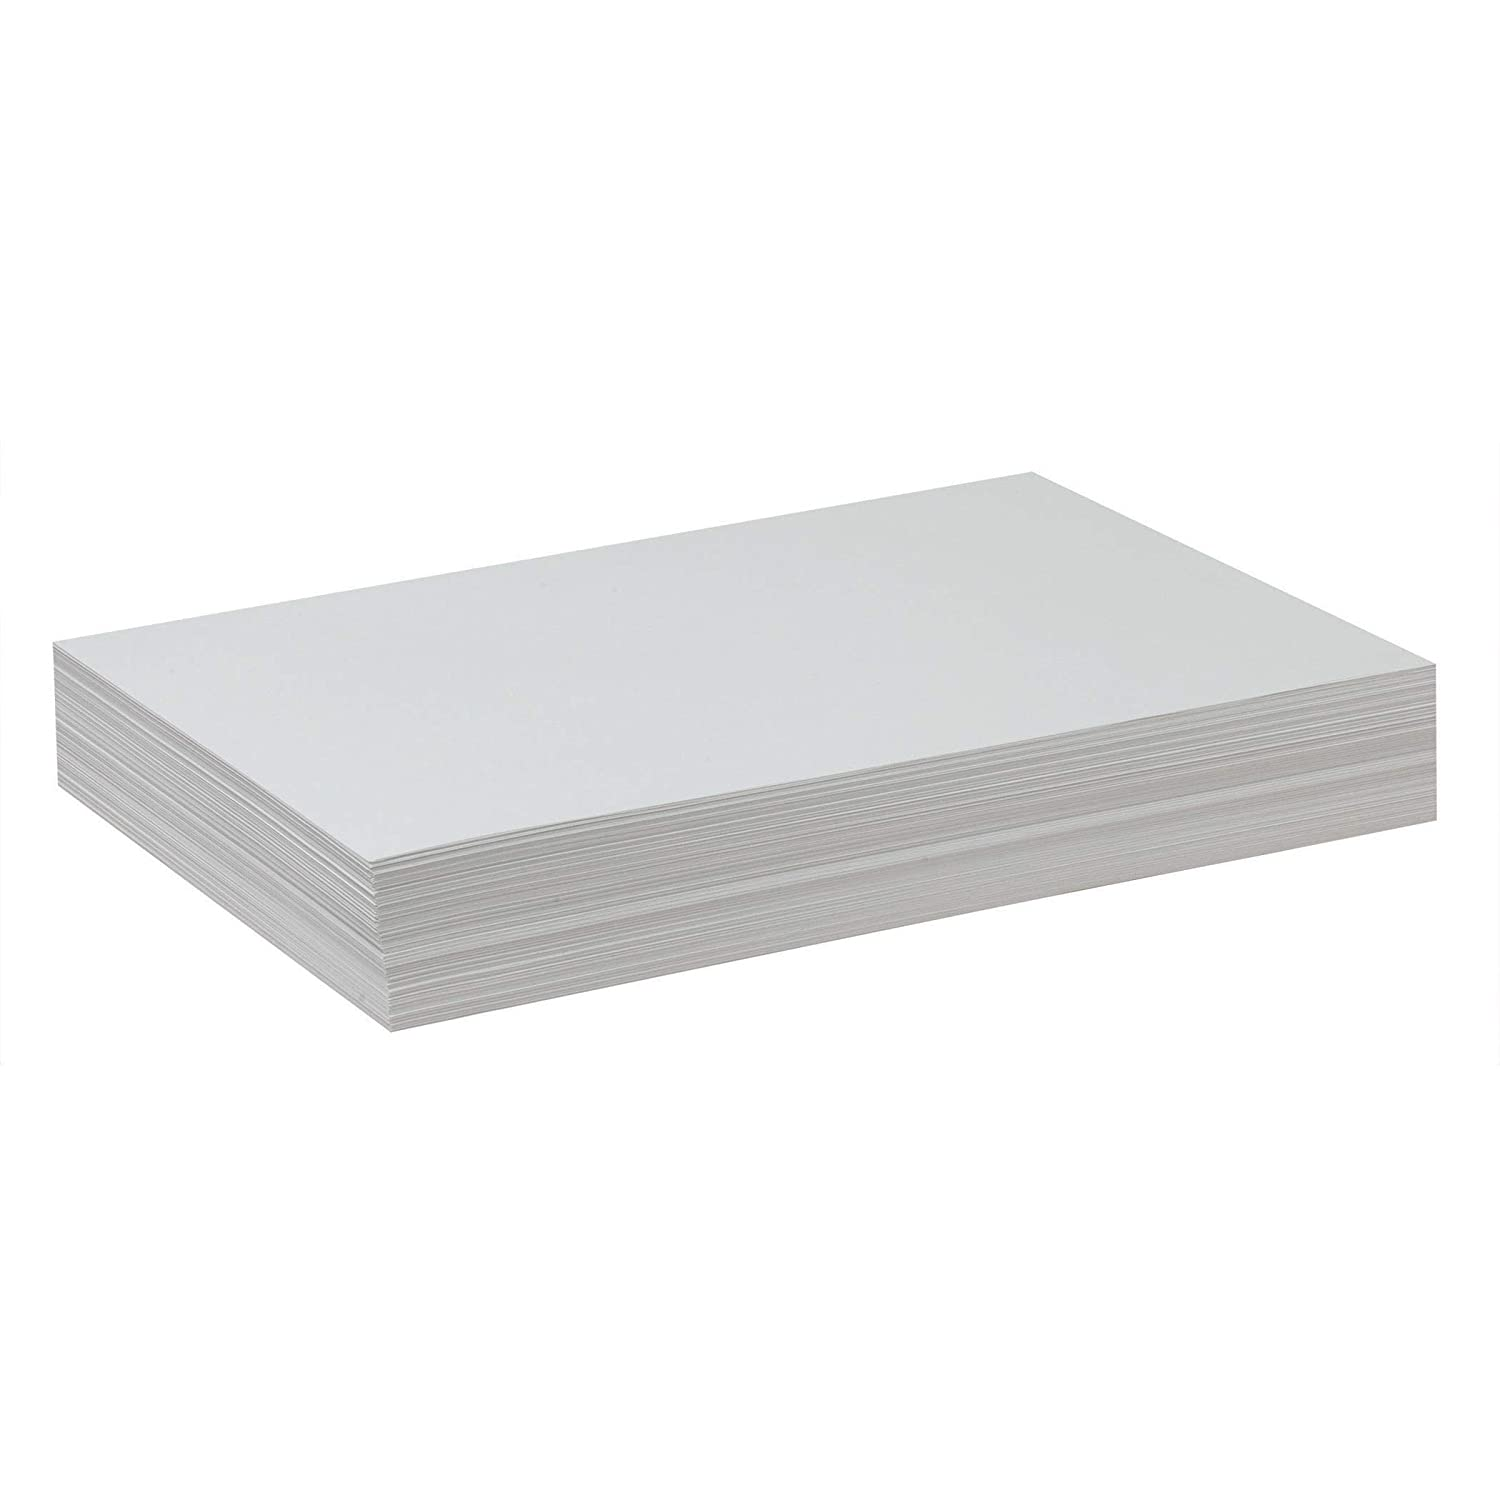 50 lb Pack of 500 School Smart Value Drawing Paper 18 x 24 Inches Soft White